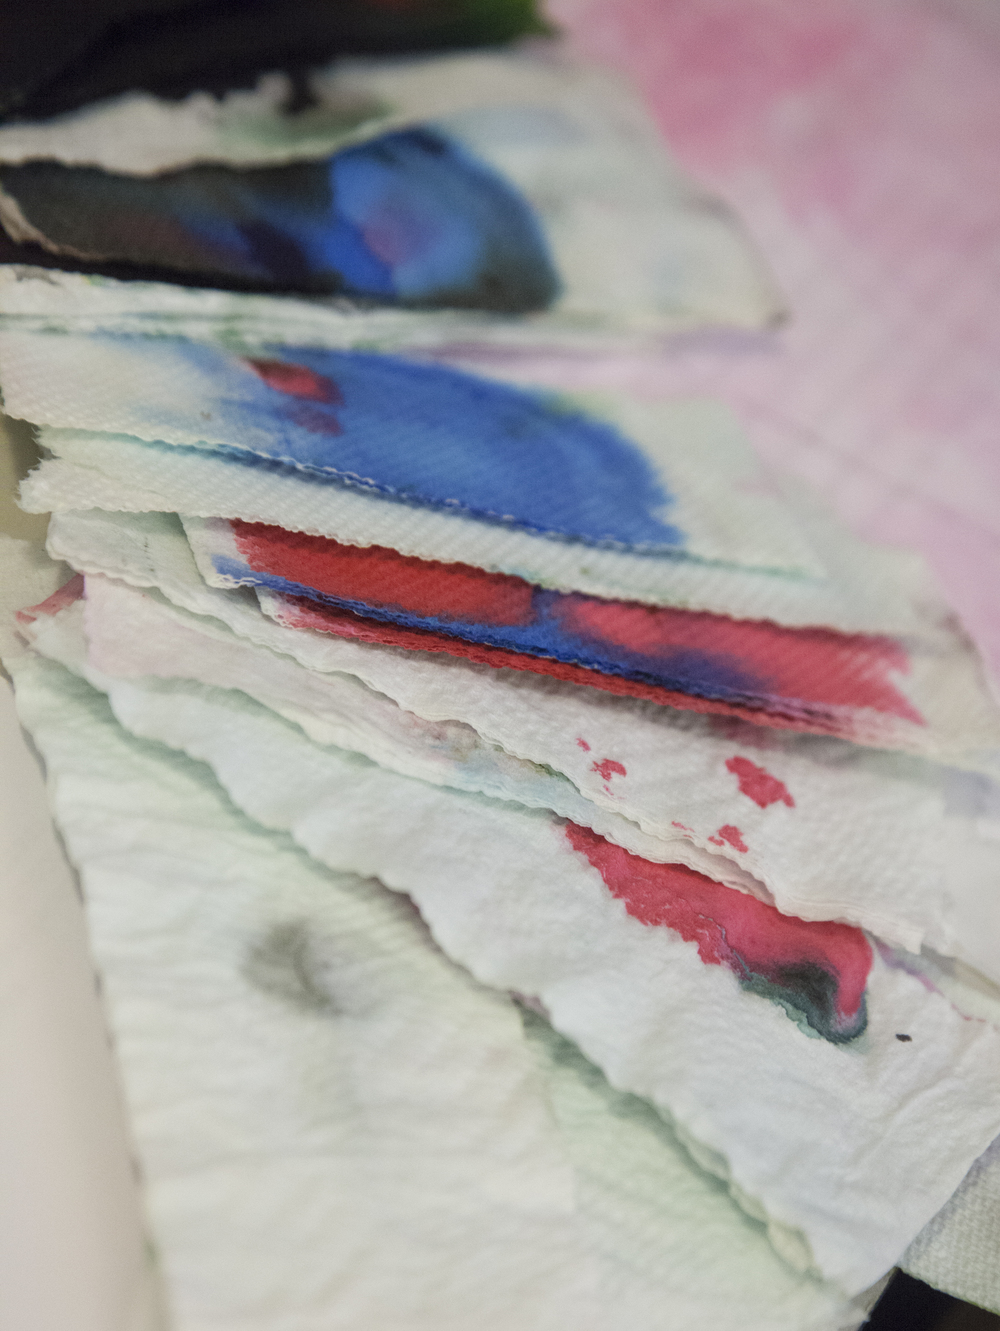 This is some of the paper towels I used for cleaning. It's kind of cool to see when some of the colors loosen up. Kind of. It would be fun if ink wasn't so darn expensive.